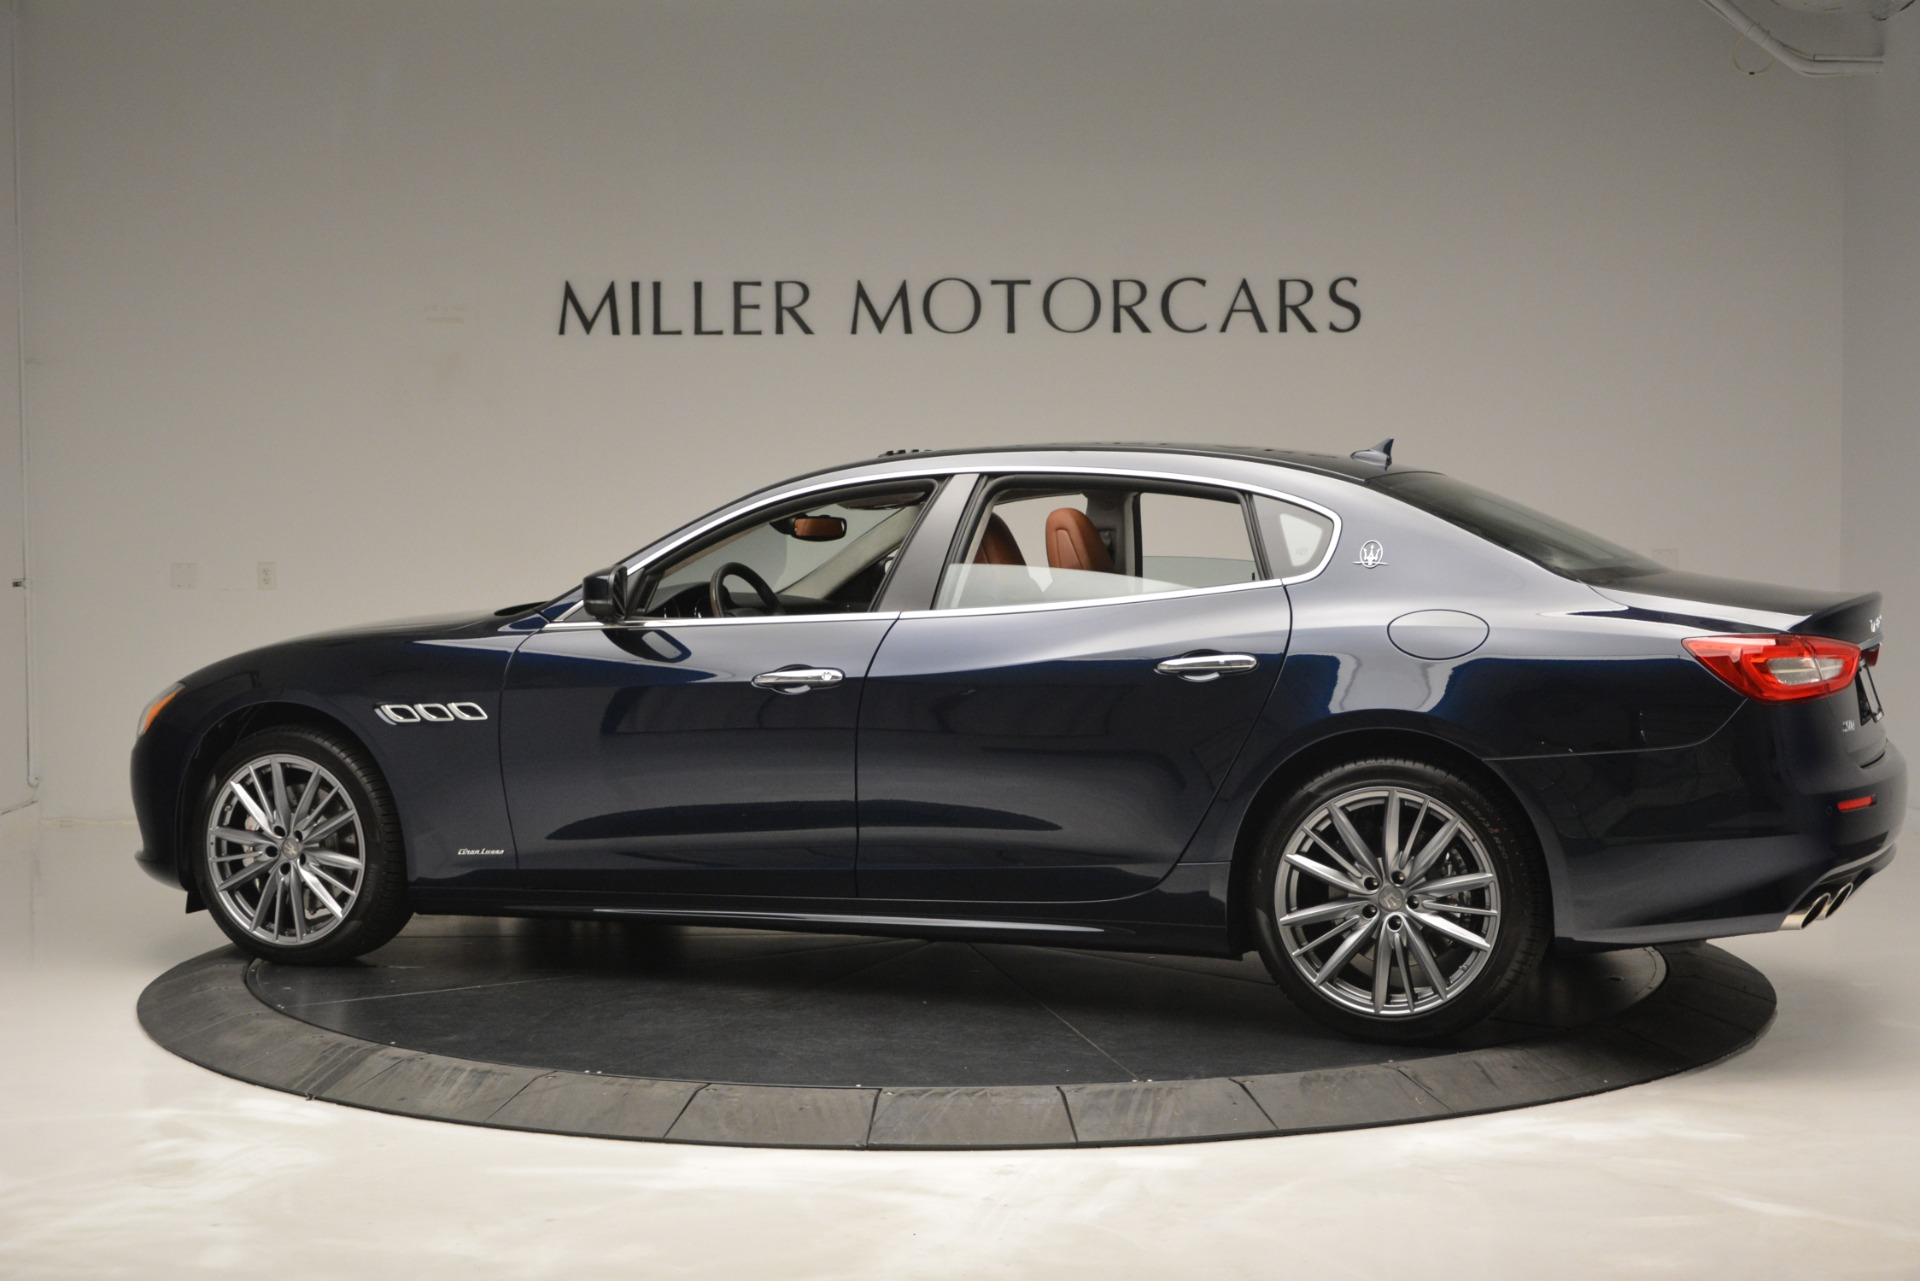 New 2019 Maserati Quattroporte S Q4 GranLusso Edizione Nobile For Sale In Greenwich, CT 2898_p6